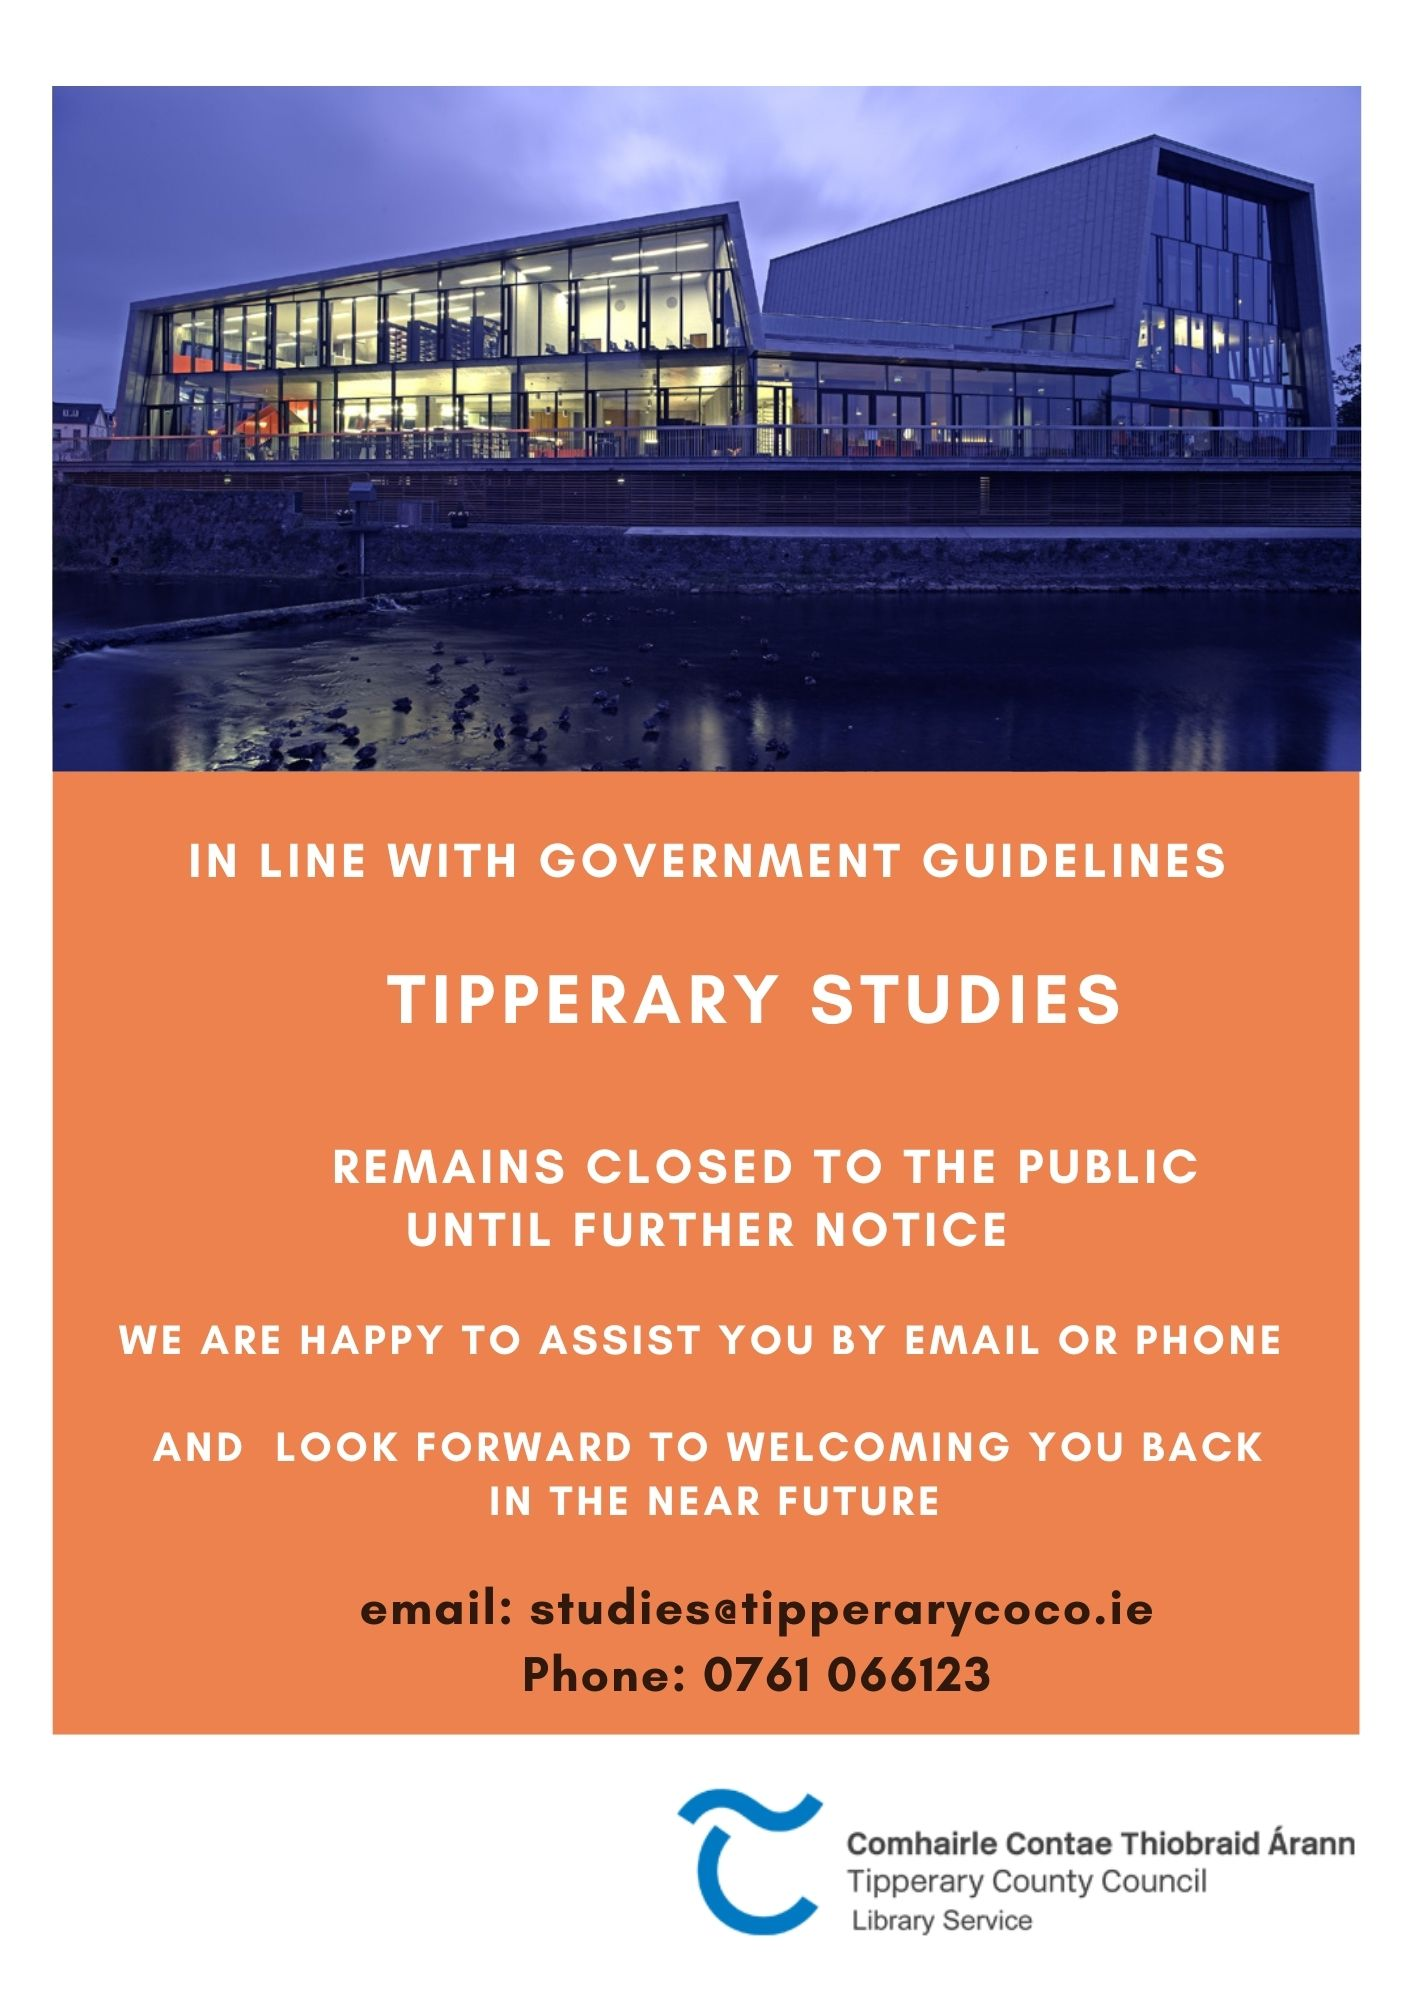 Monday 10th May – Studies Remains Closed To Public